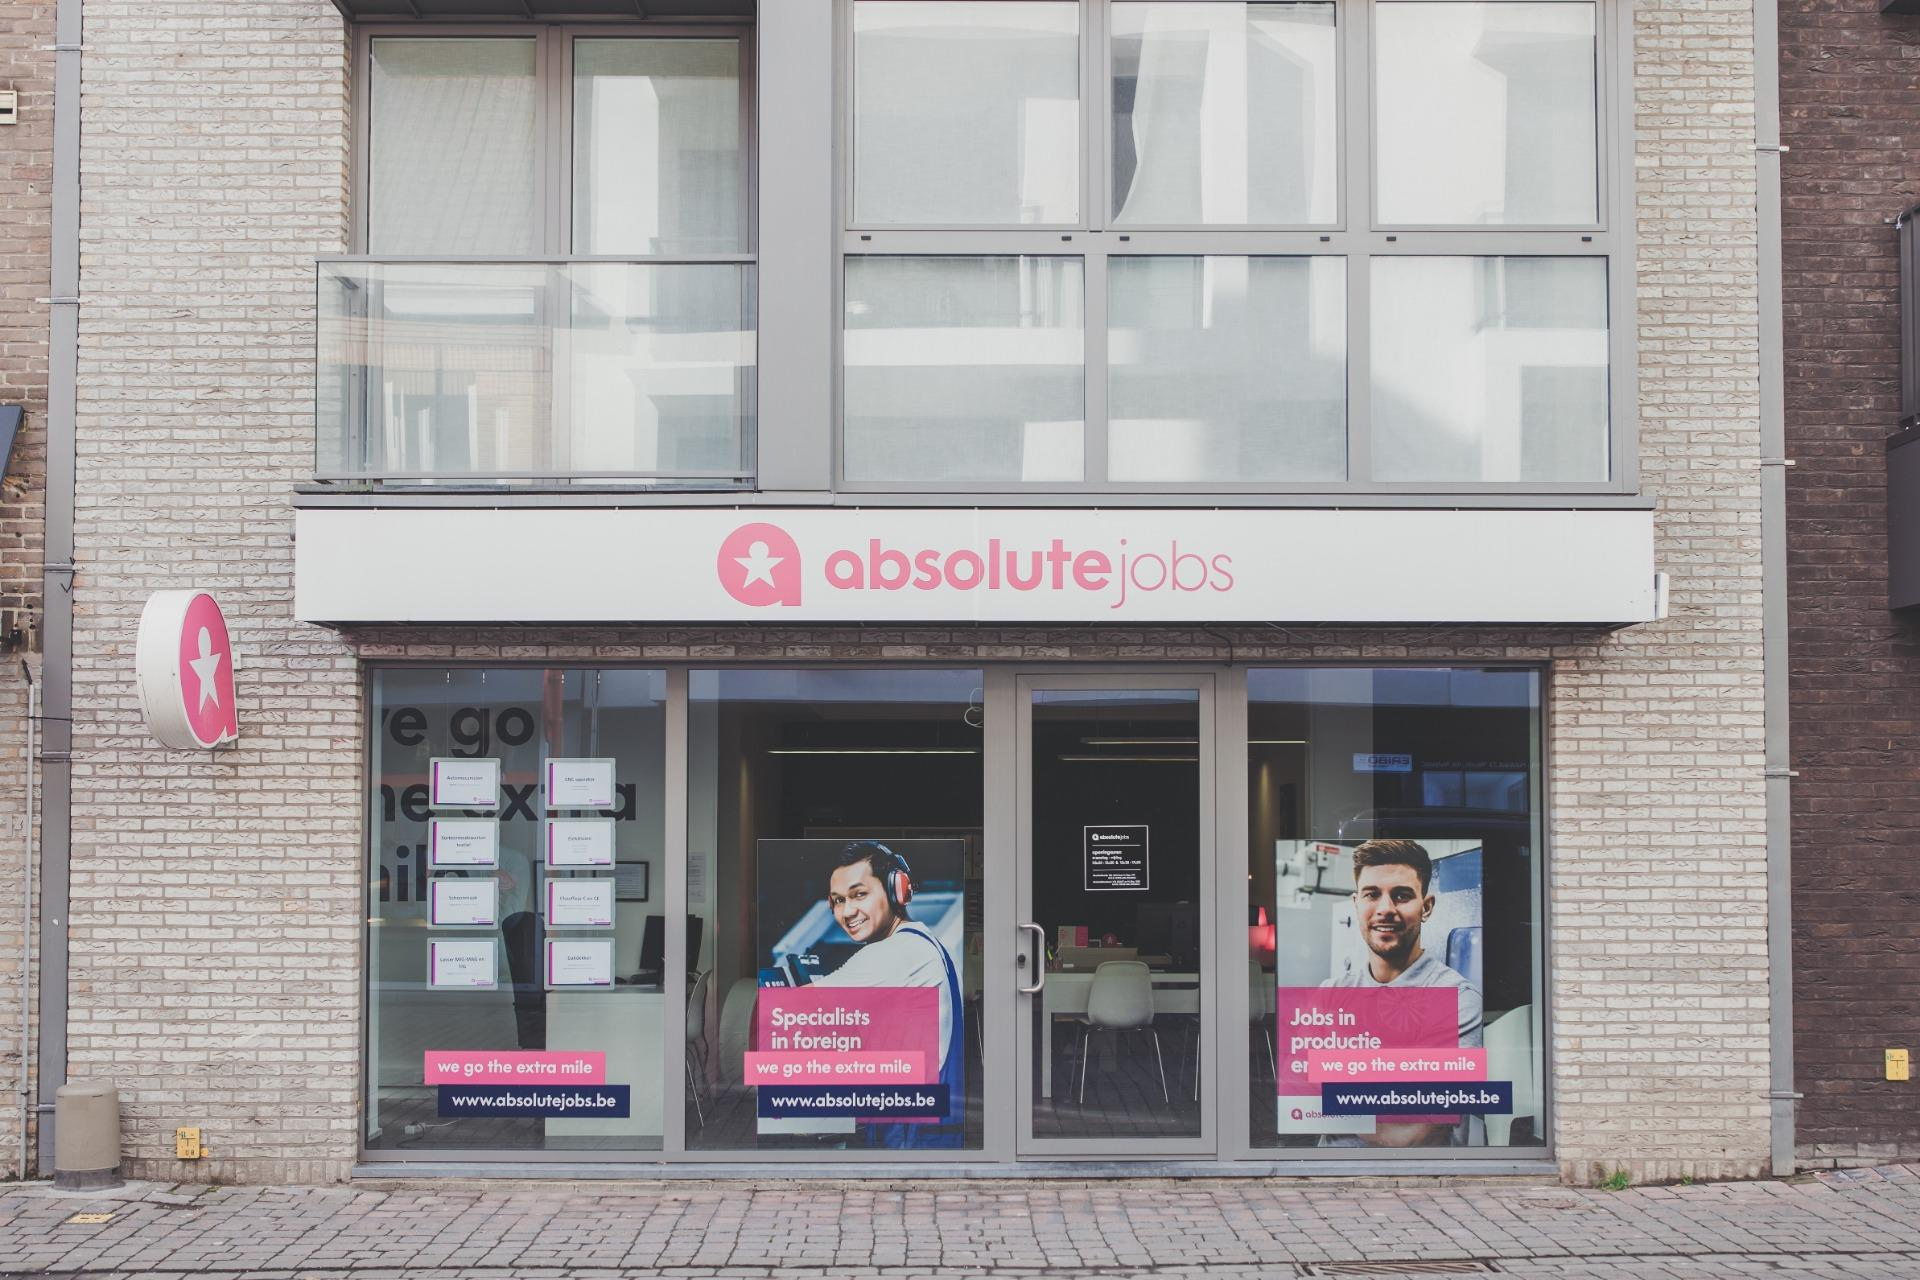 absolute jobs Waregem